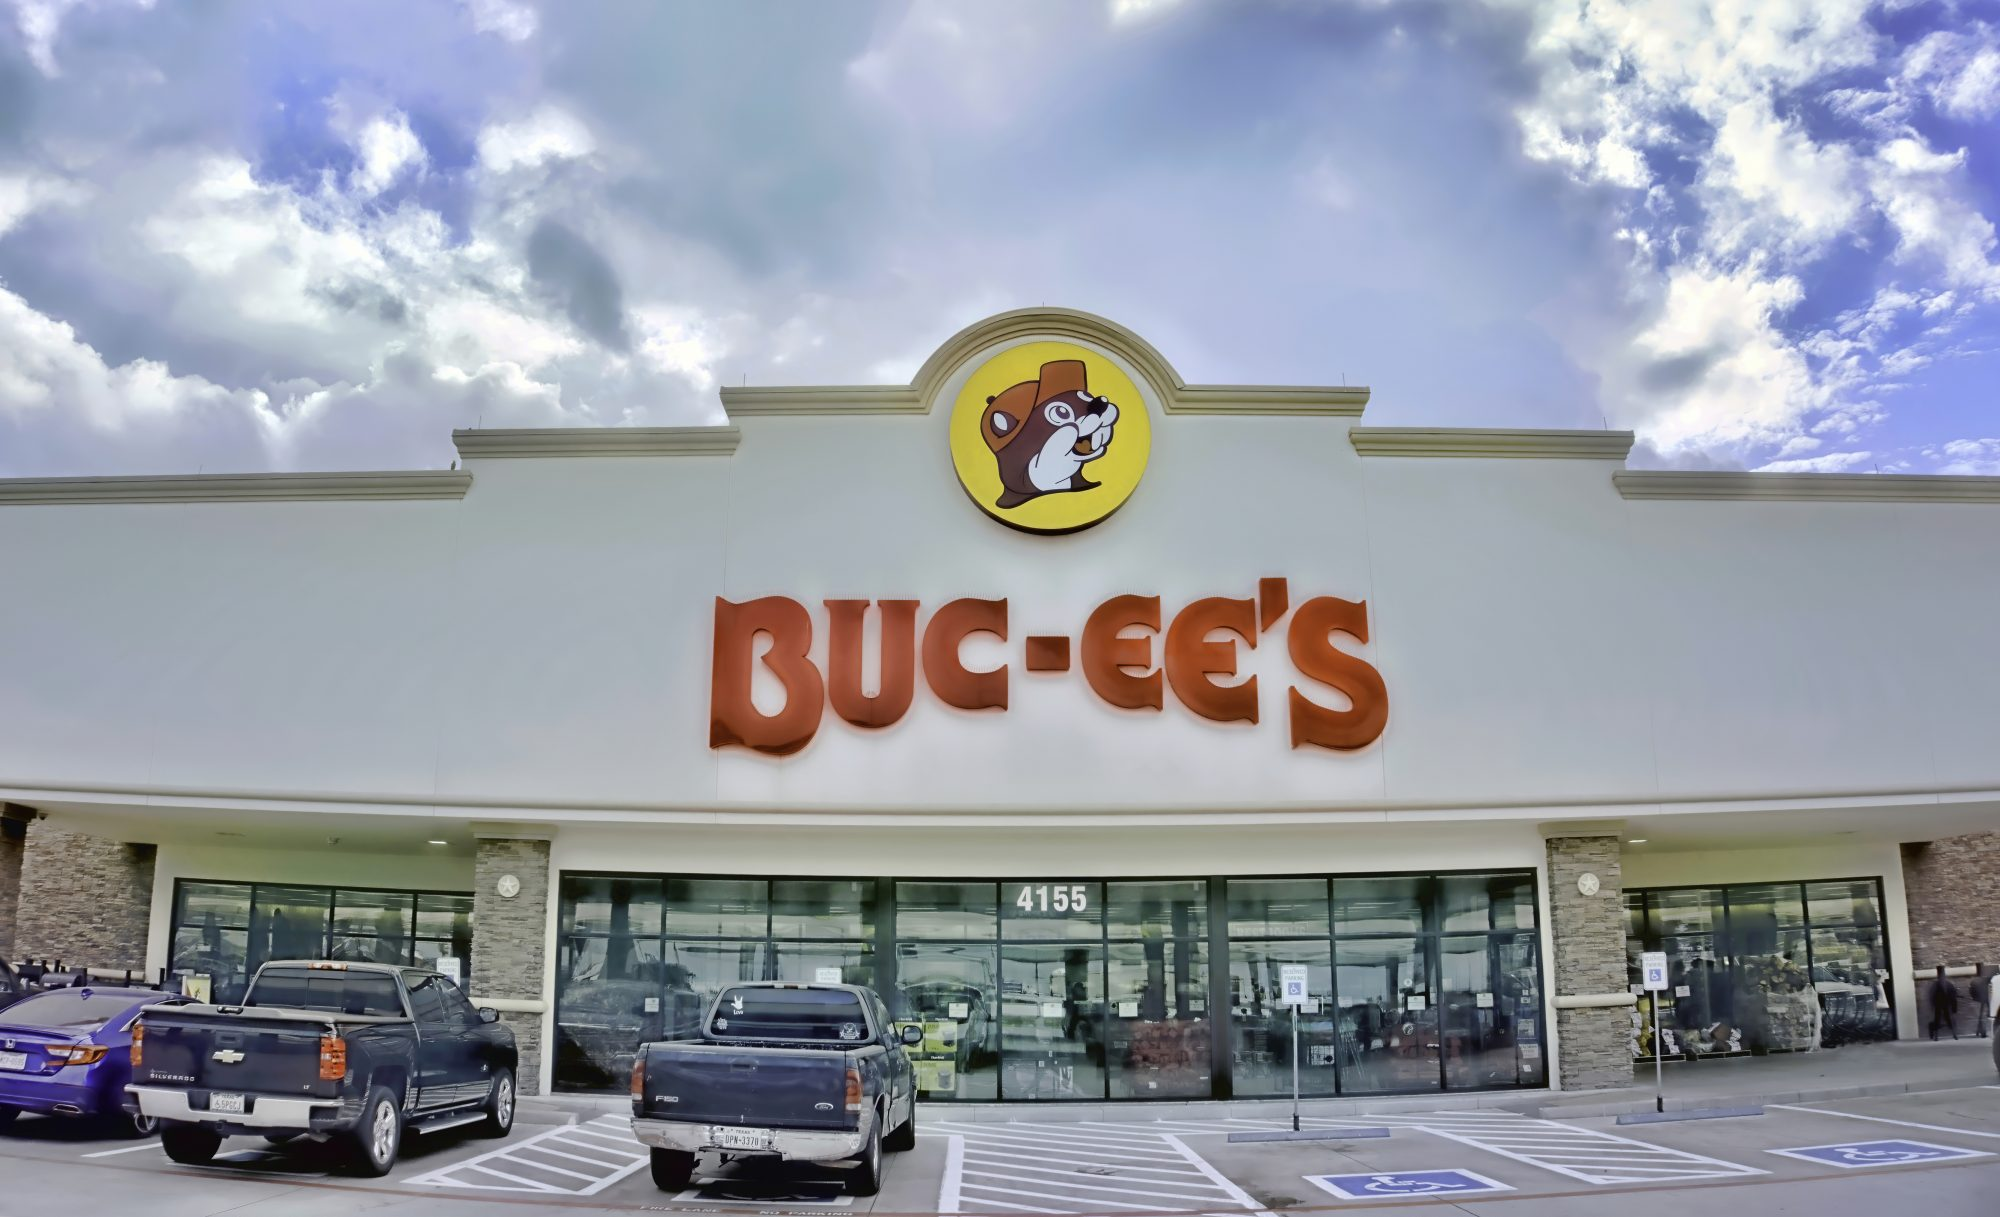 Buc-ee's Convenience Store.